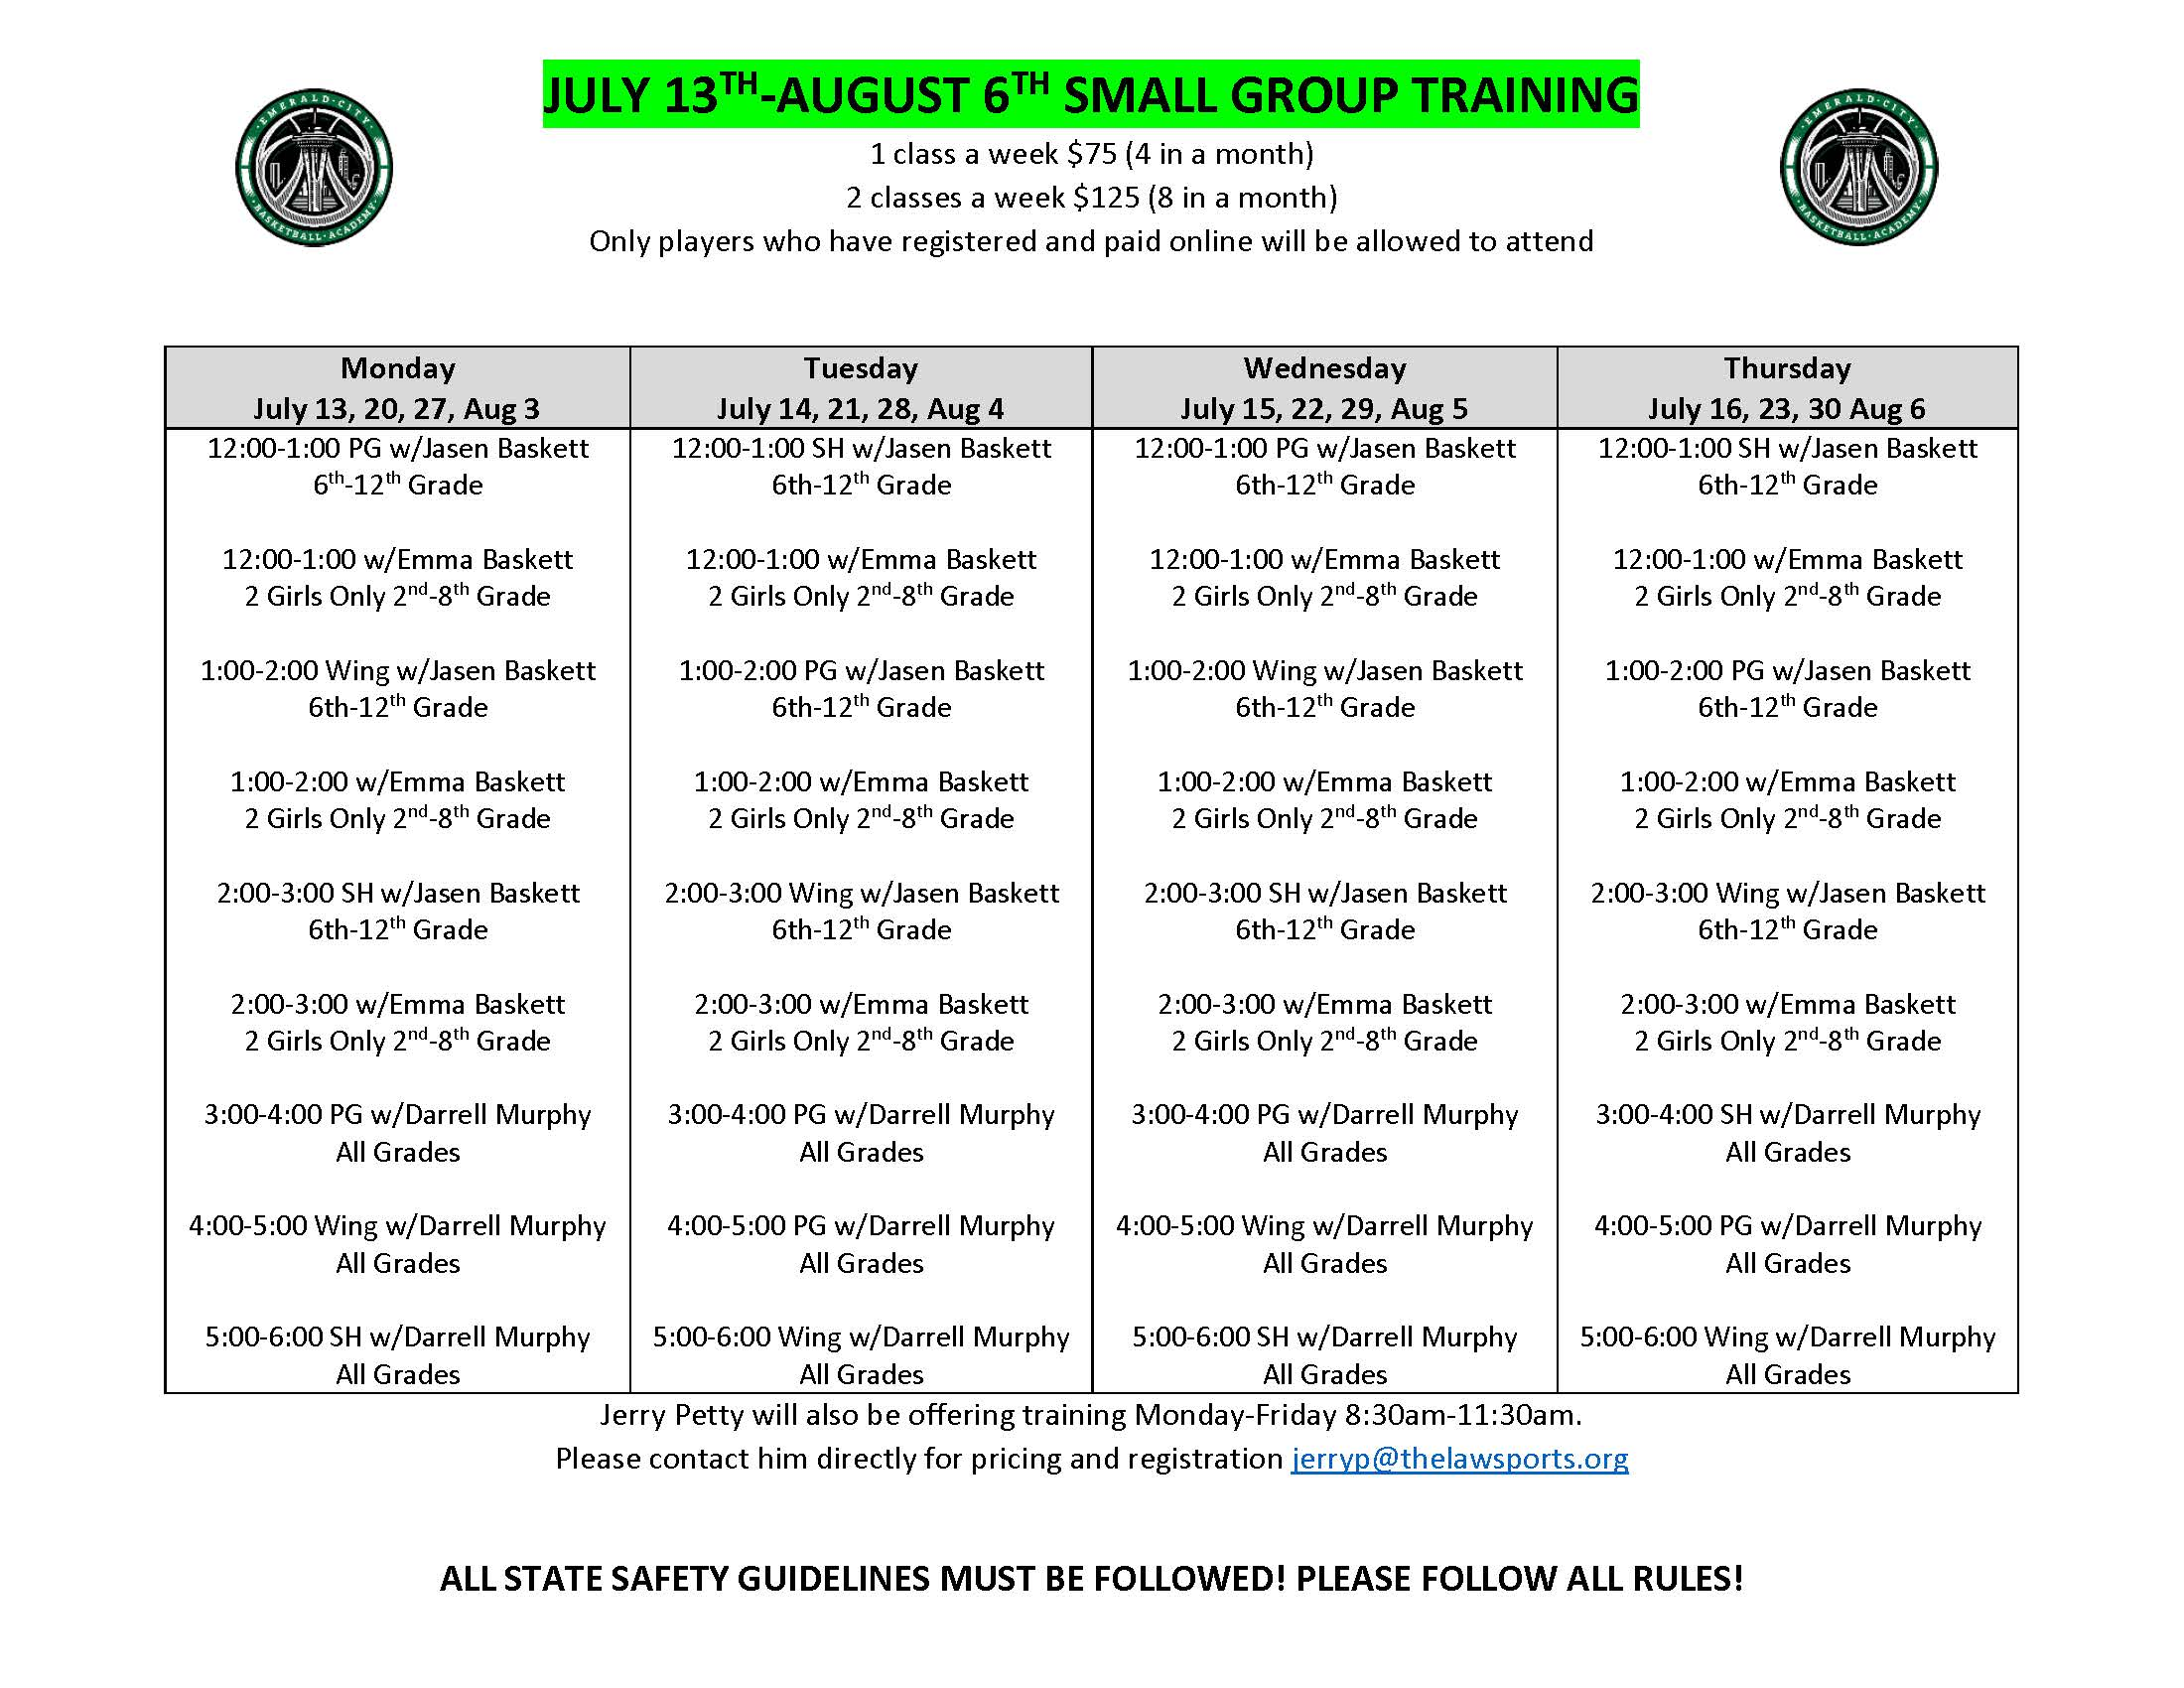 JULY 13TH-AUG 6 Small Group Training